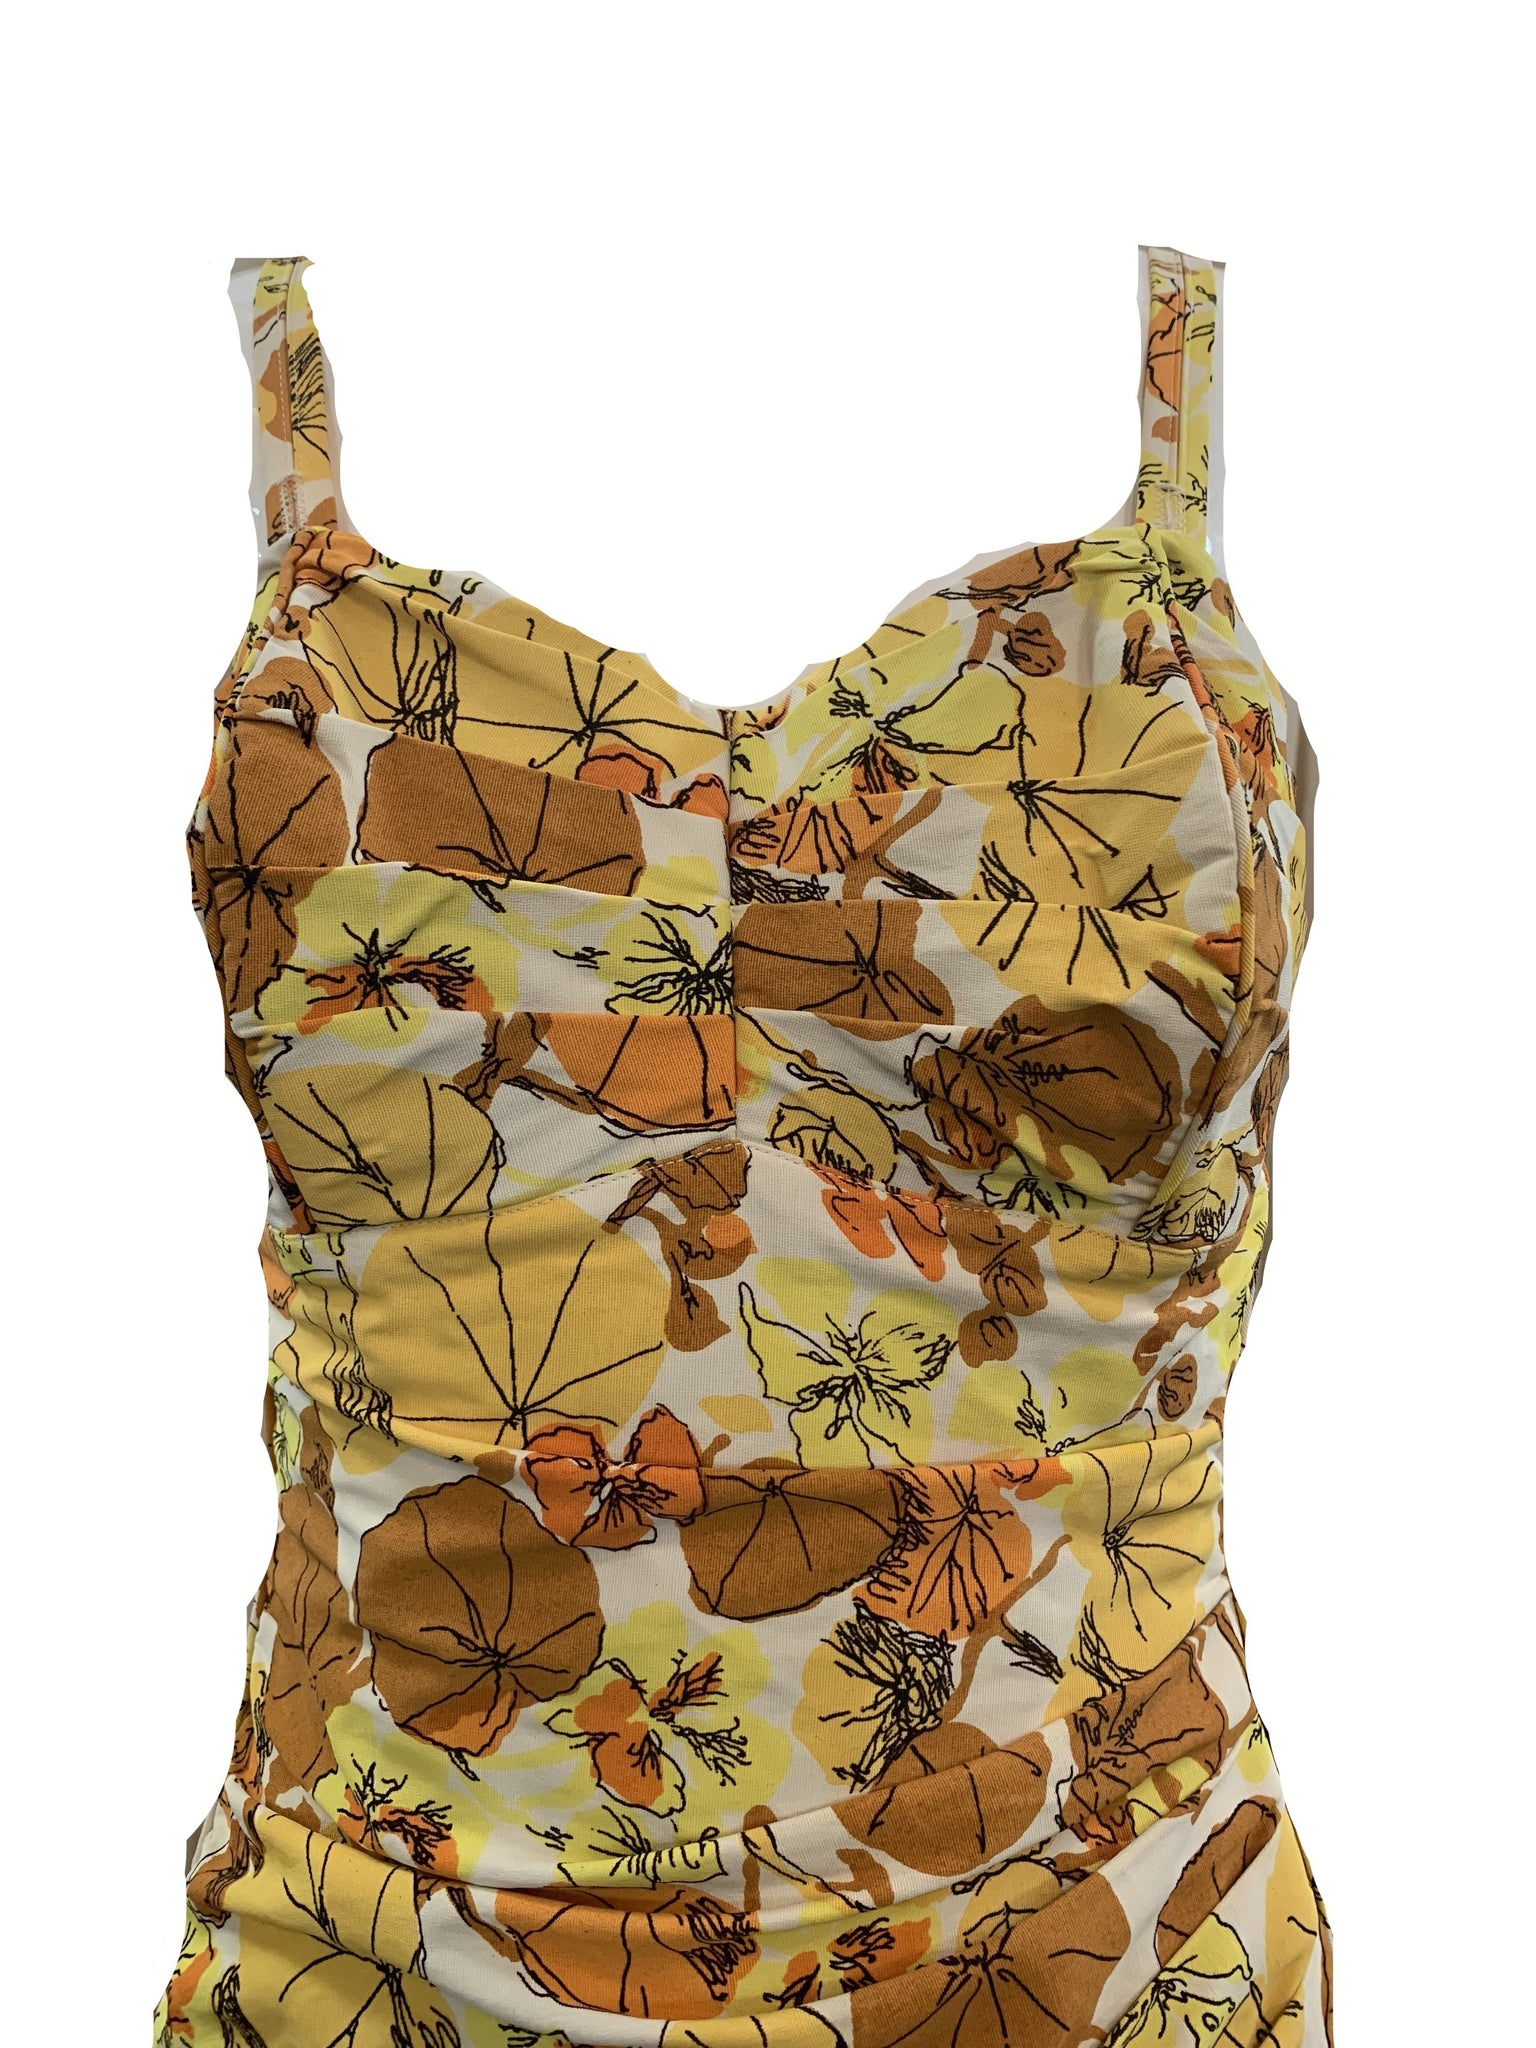 Roxanne 50s Swimsuit in Autumnal Floral Tones  CLOSE UP 3 of 5